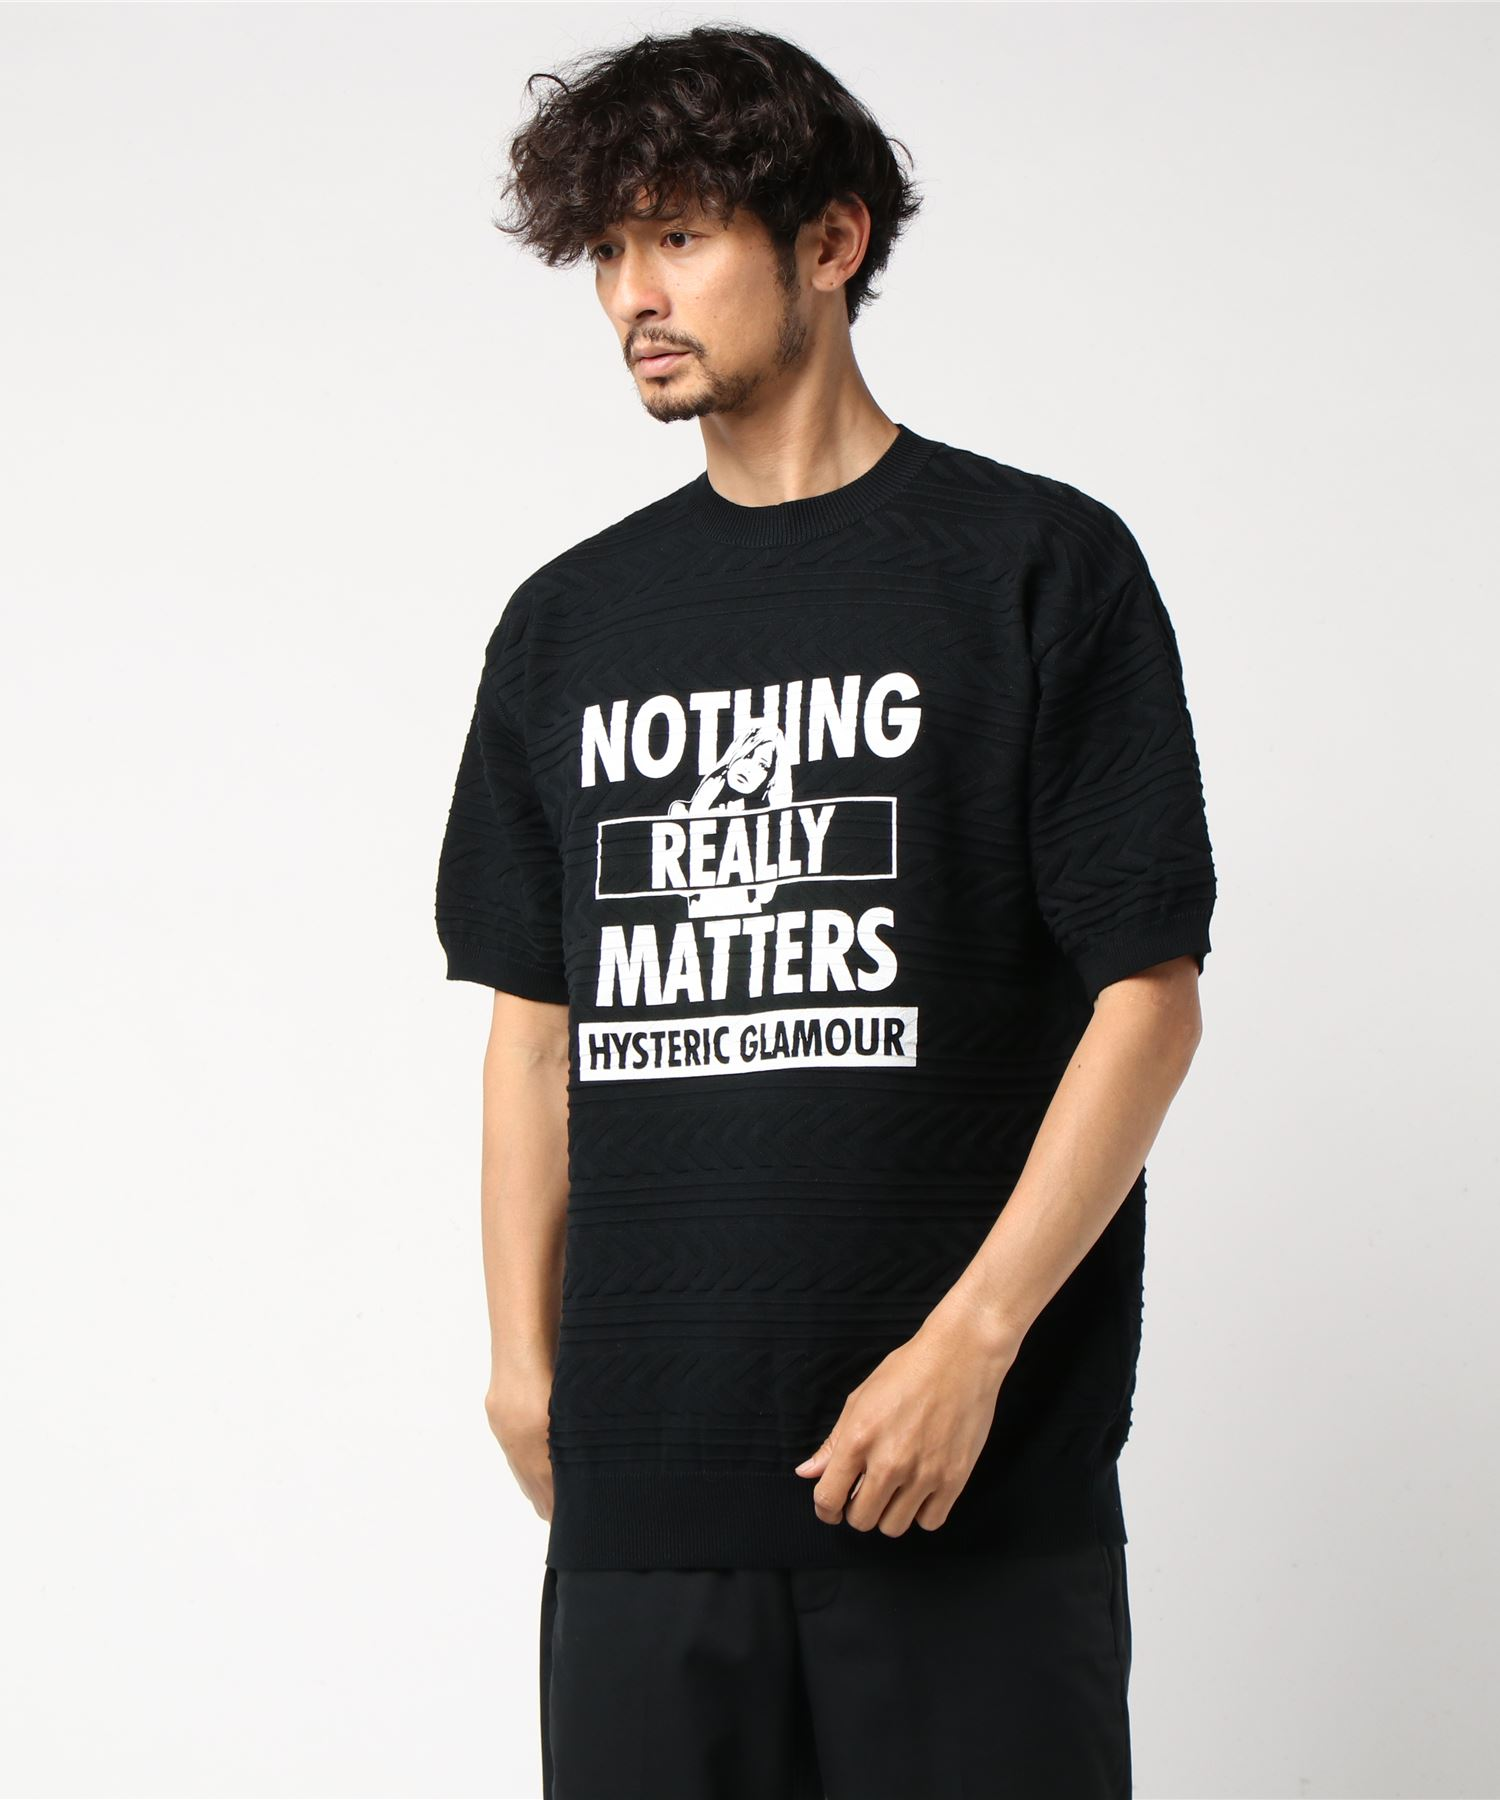 NOTHING REALLY MATTERS プルオーバー